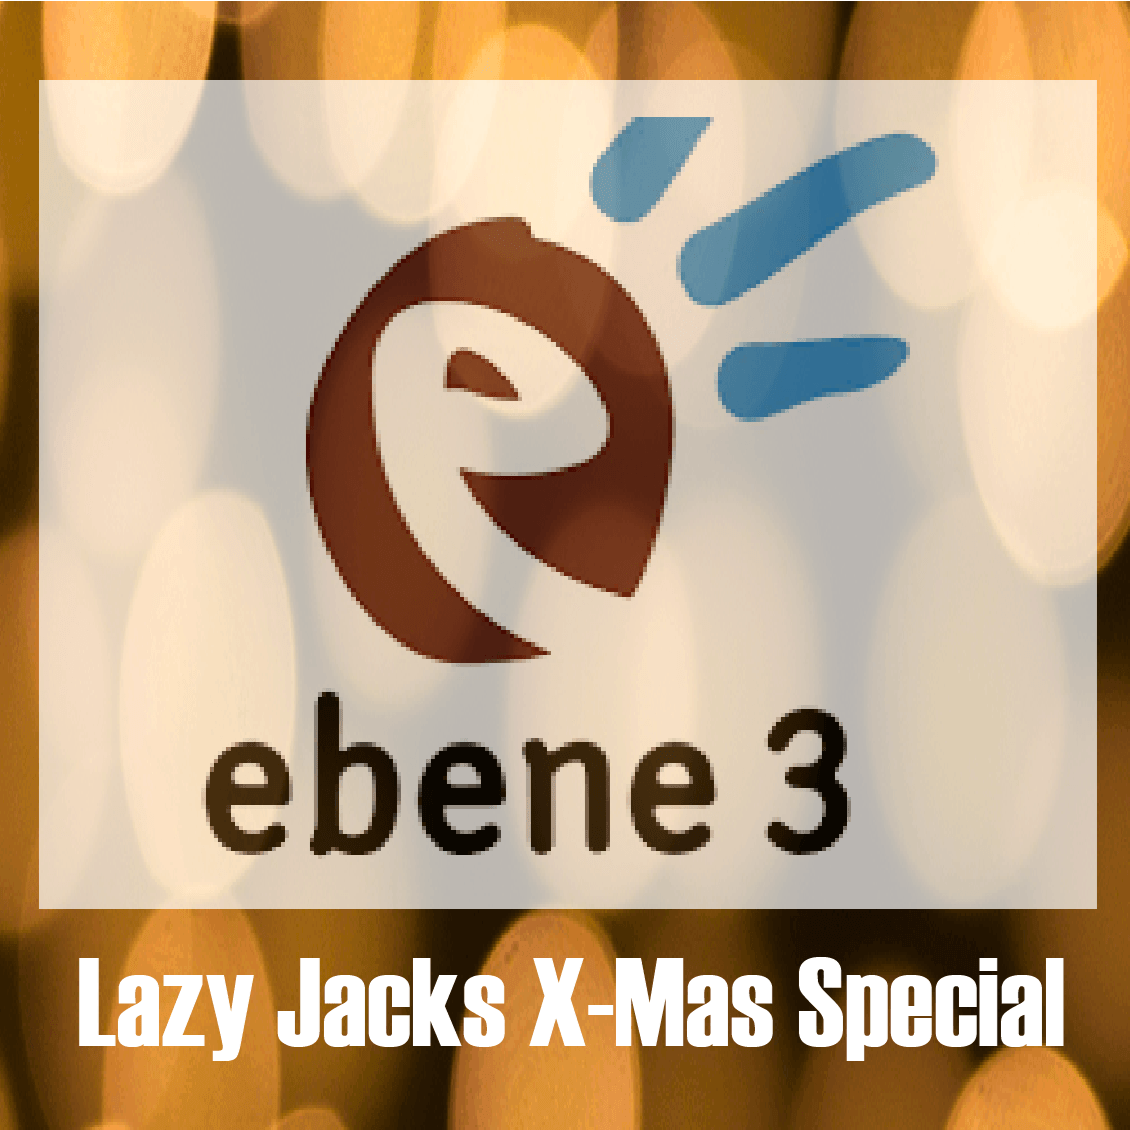 Lazy Jacks X-Mas Special